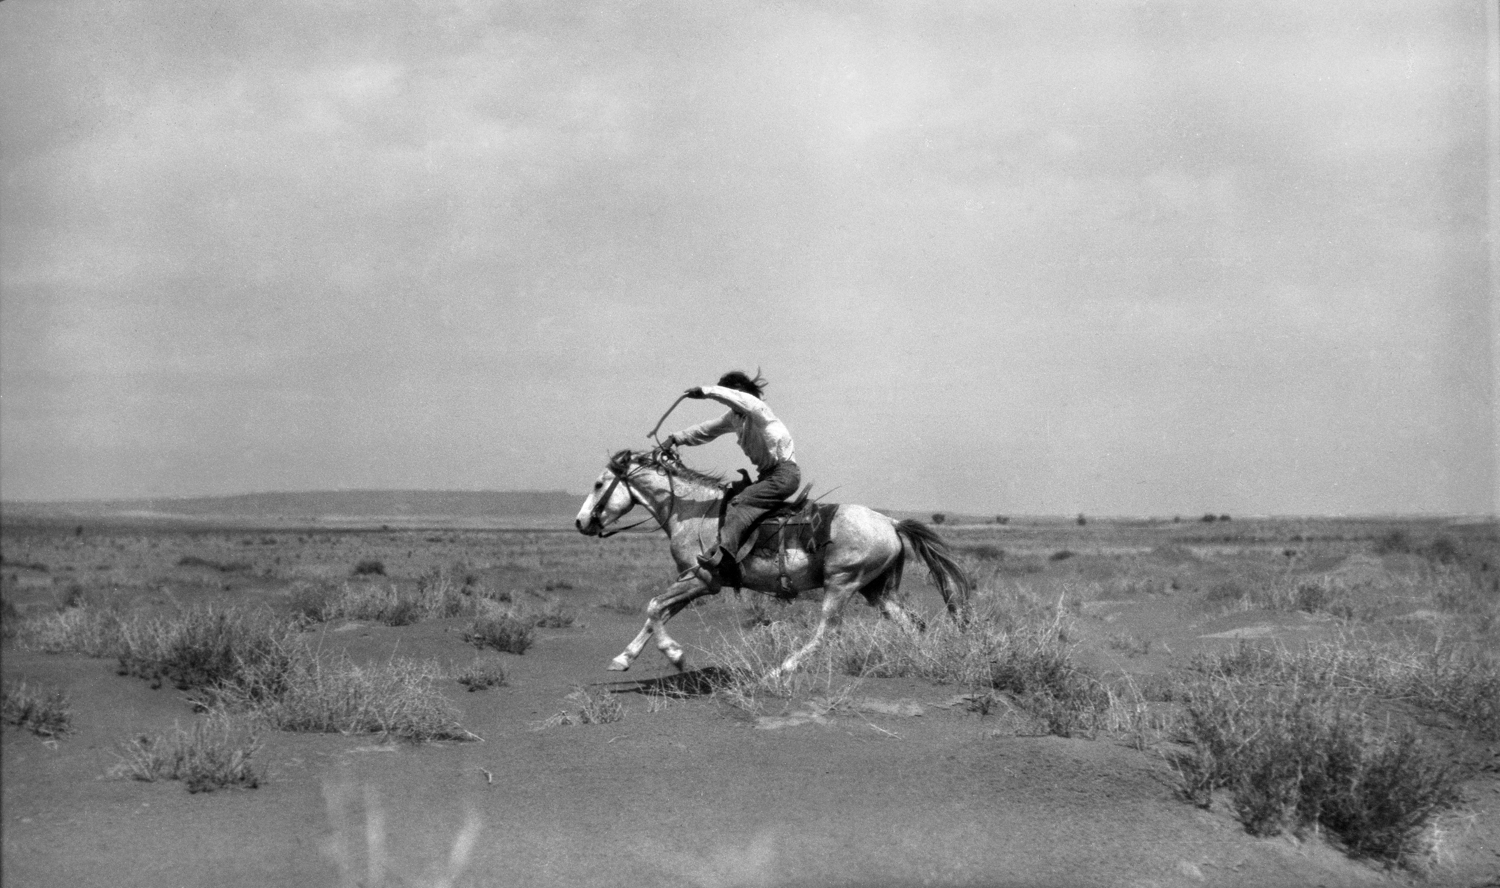 Hopi Boy Racing Horse, Hopi Reservation, Arizona, July 8, 1908. Photograph by Joseph Dixon. Courtesy of the Mathers Museum of World Cultures, Wanamaker Collection, Indiana University, Bloomington, I.N., W-5687.